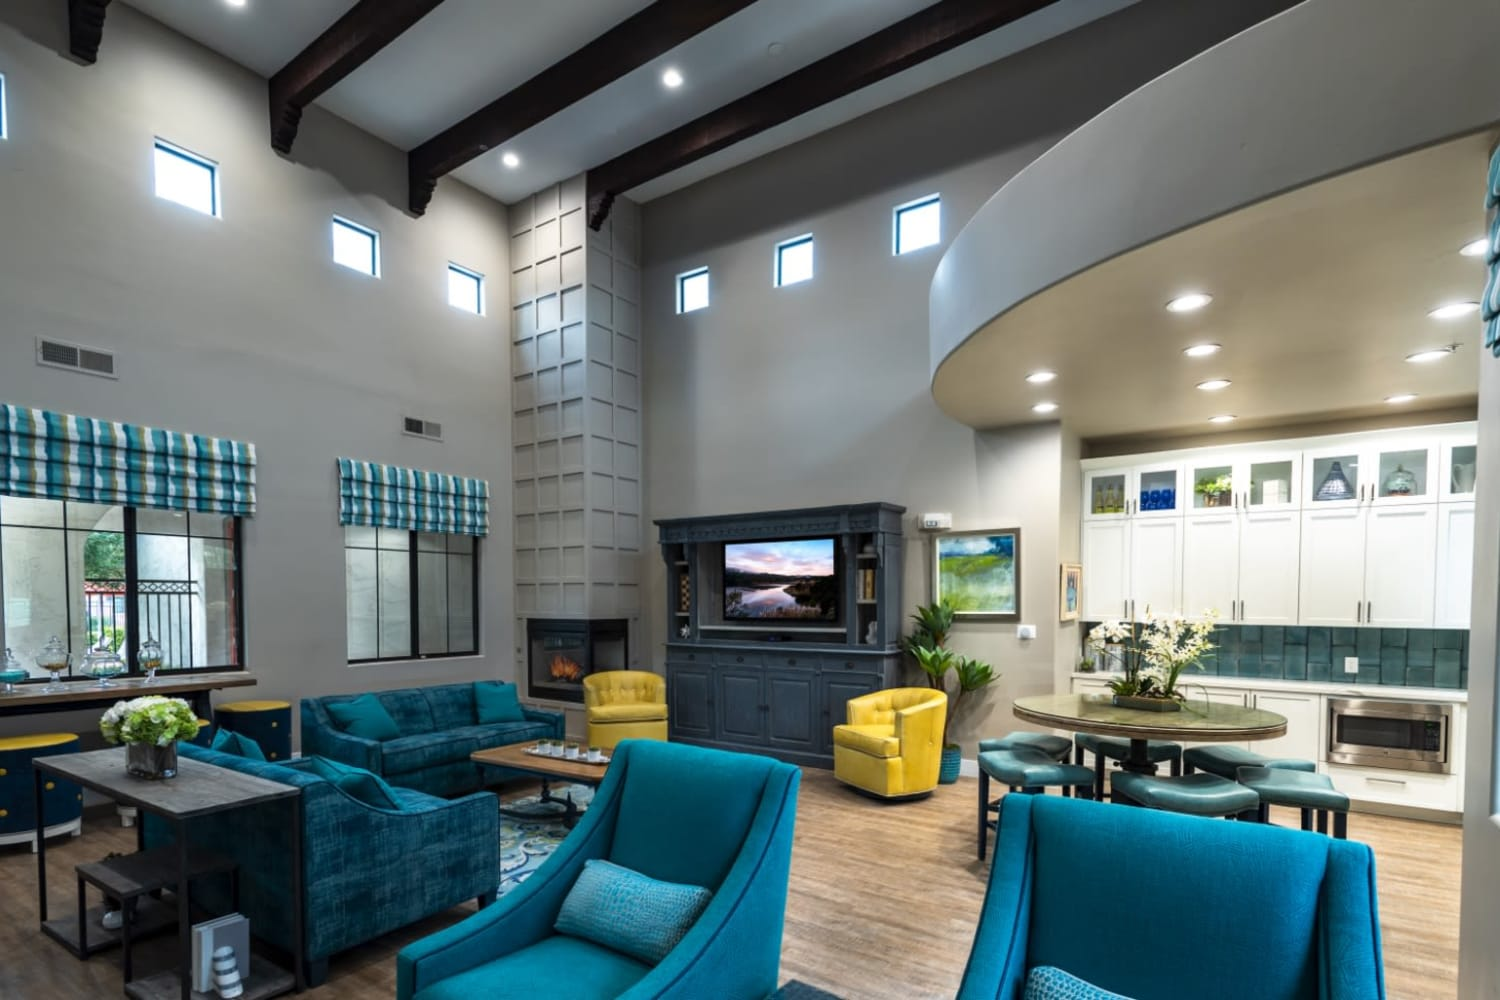 Enjoy the clubhouse television room at Dobson 2222 in Chandler, Arizona